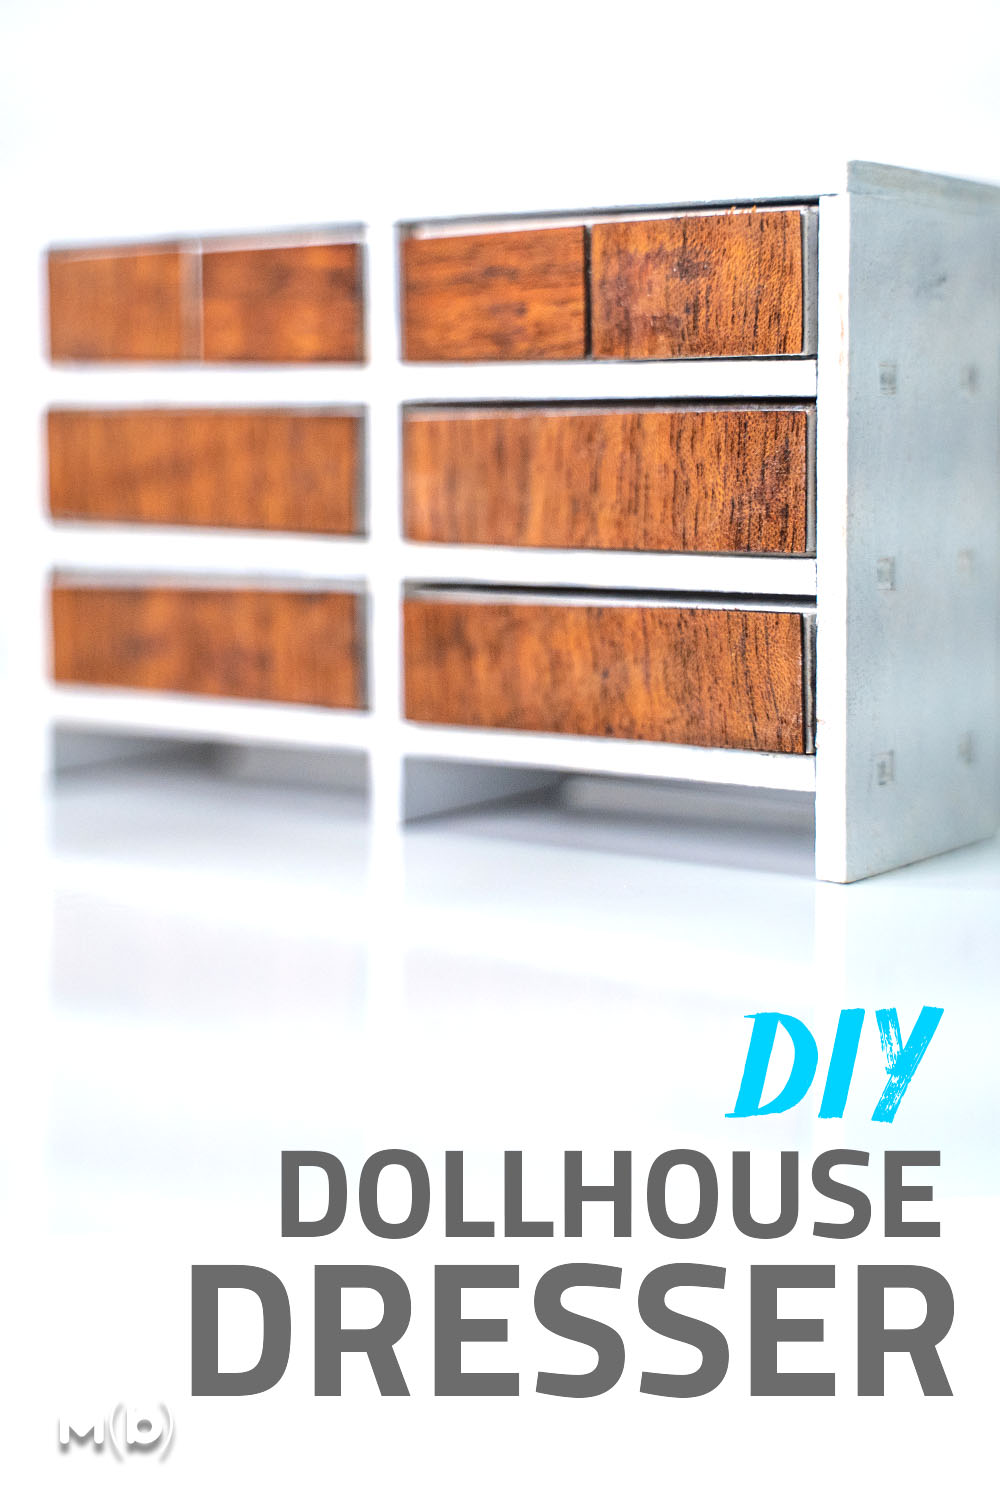 How to build miniature furniture perfect for a dollhouse. I used a laser cutter but you can just as easily cut all the pieces out with a knife!